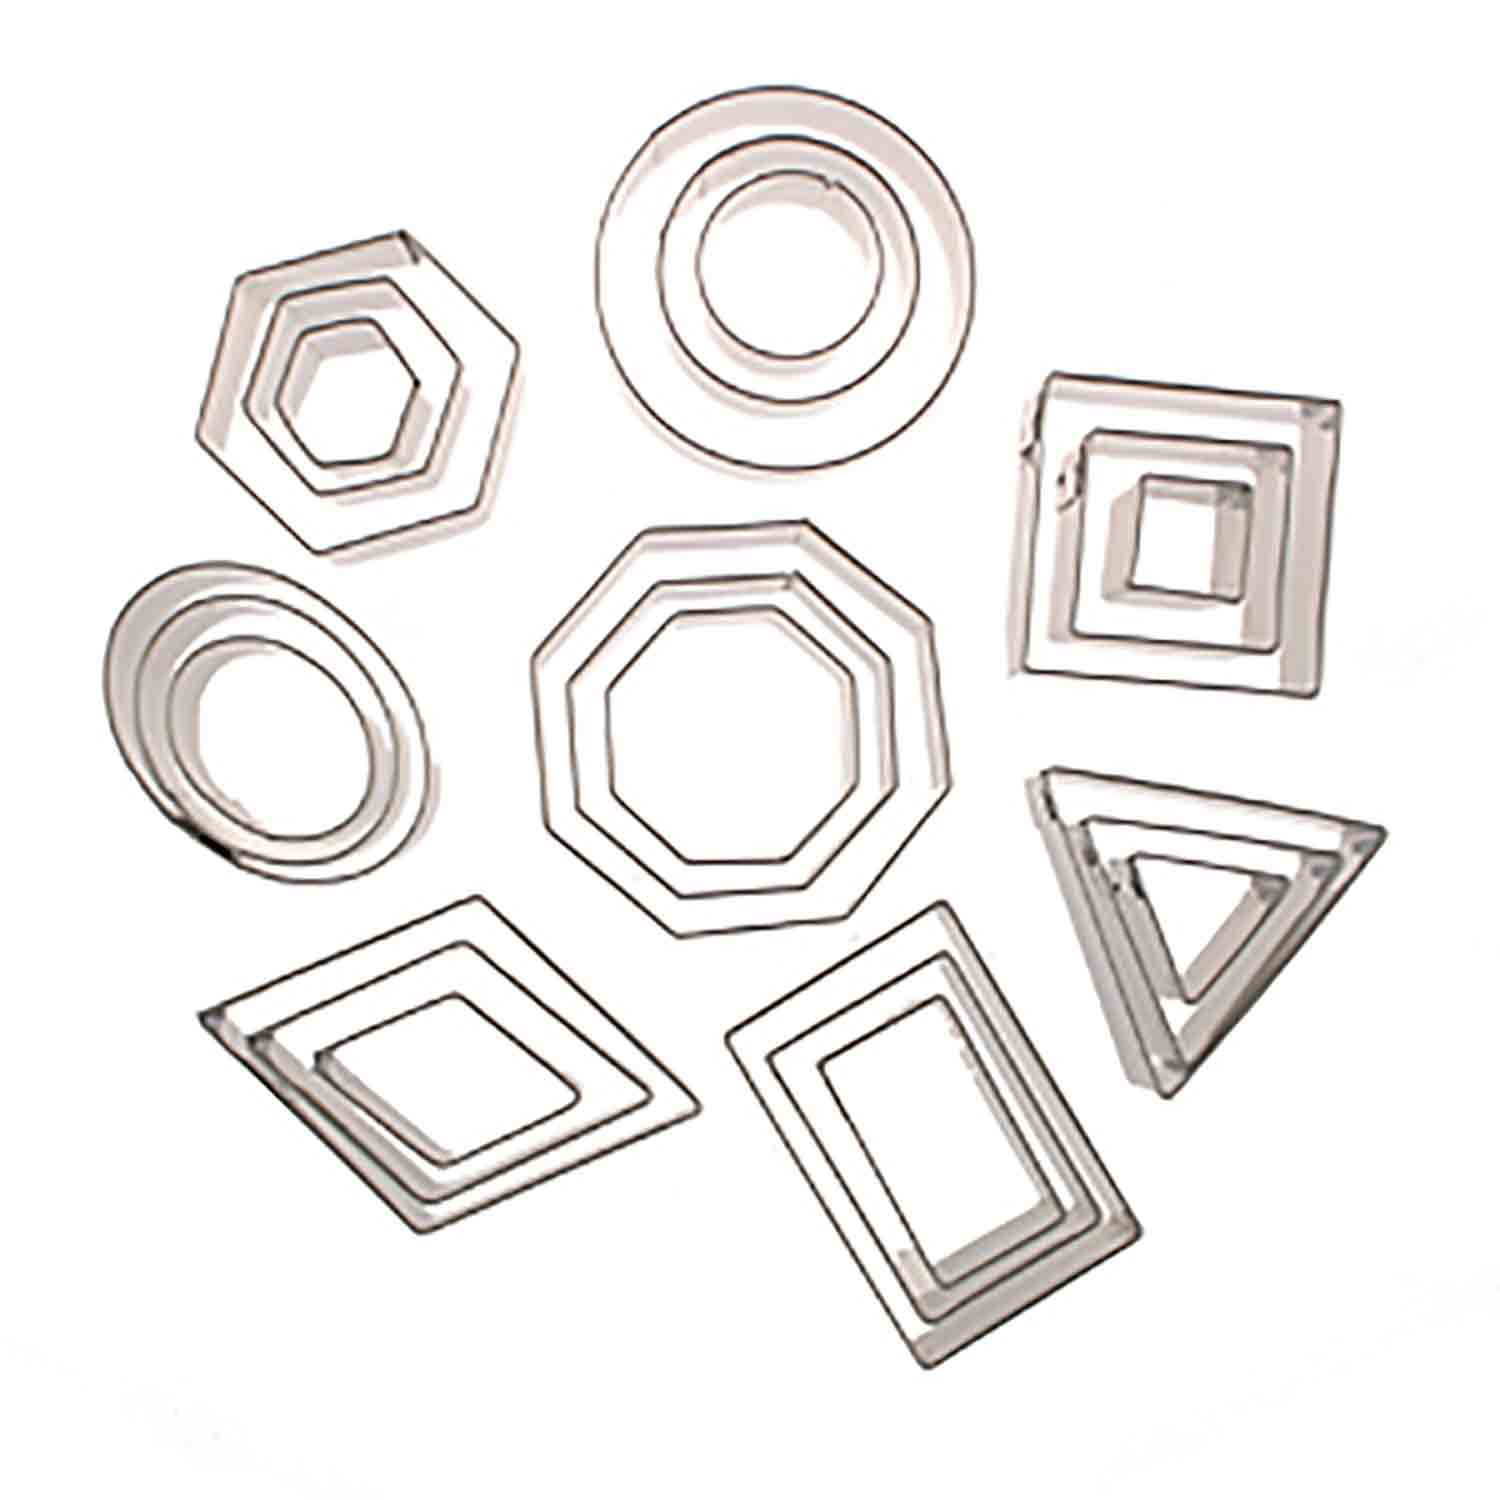 Geometric Shape Cookie Cutter Set